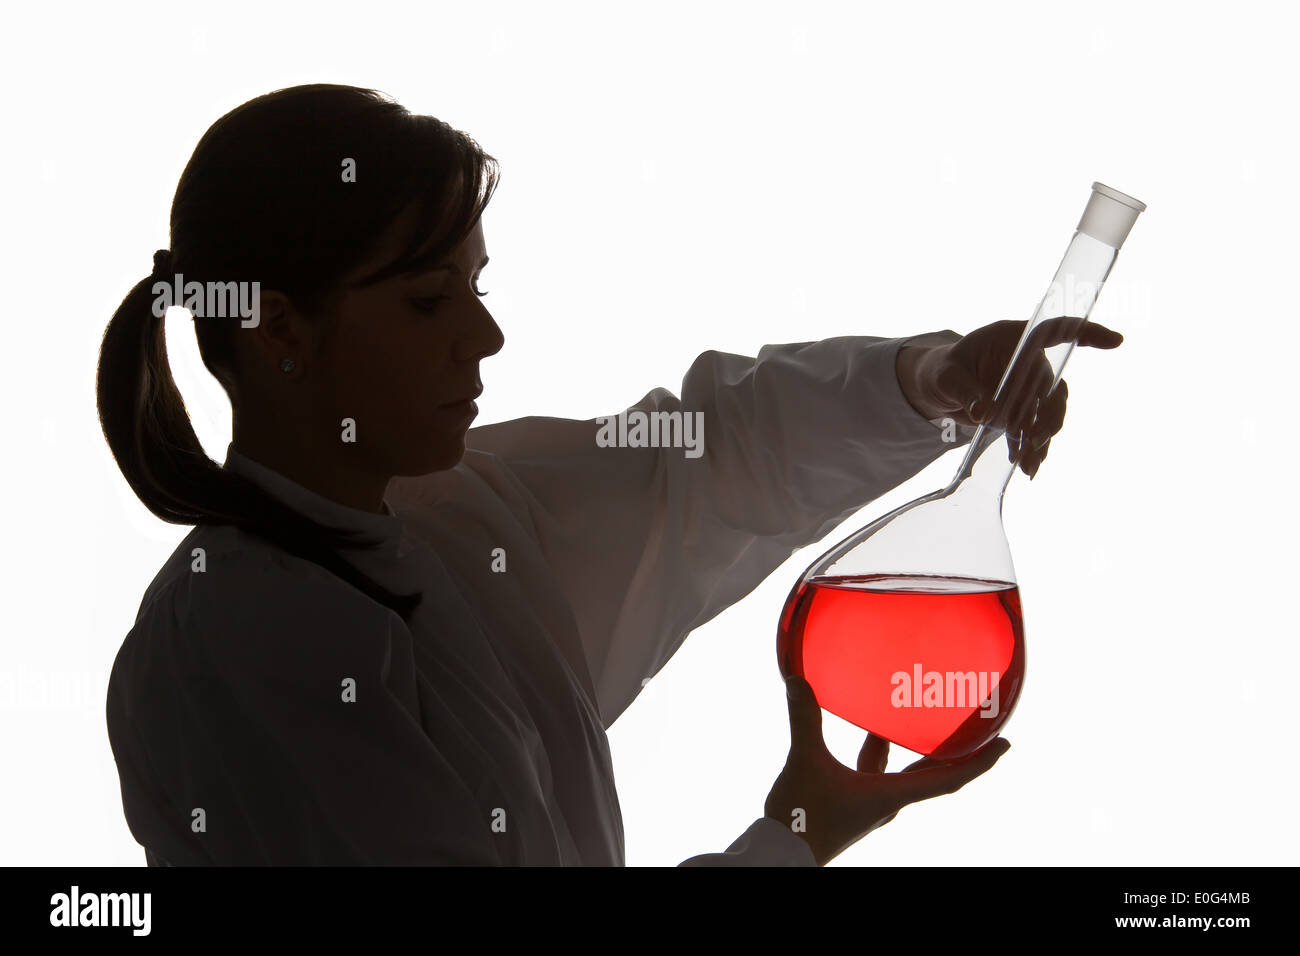 Symbolic picture research , Symbolbild Forschung - Stock Image